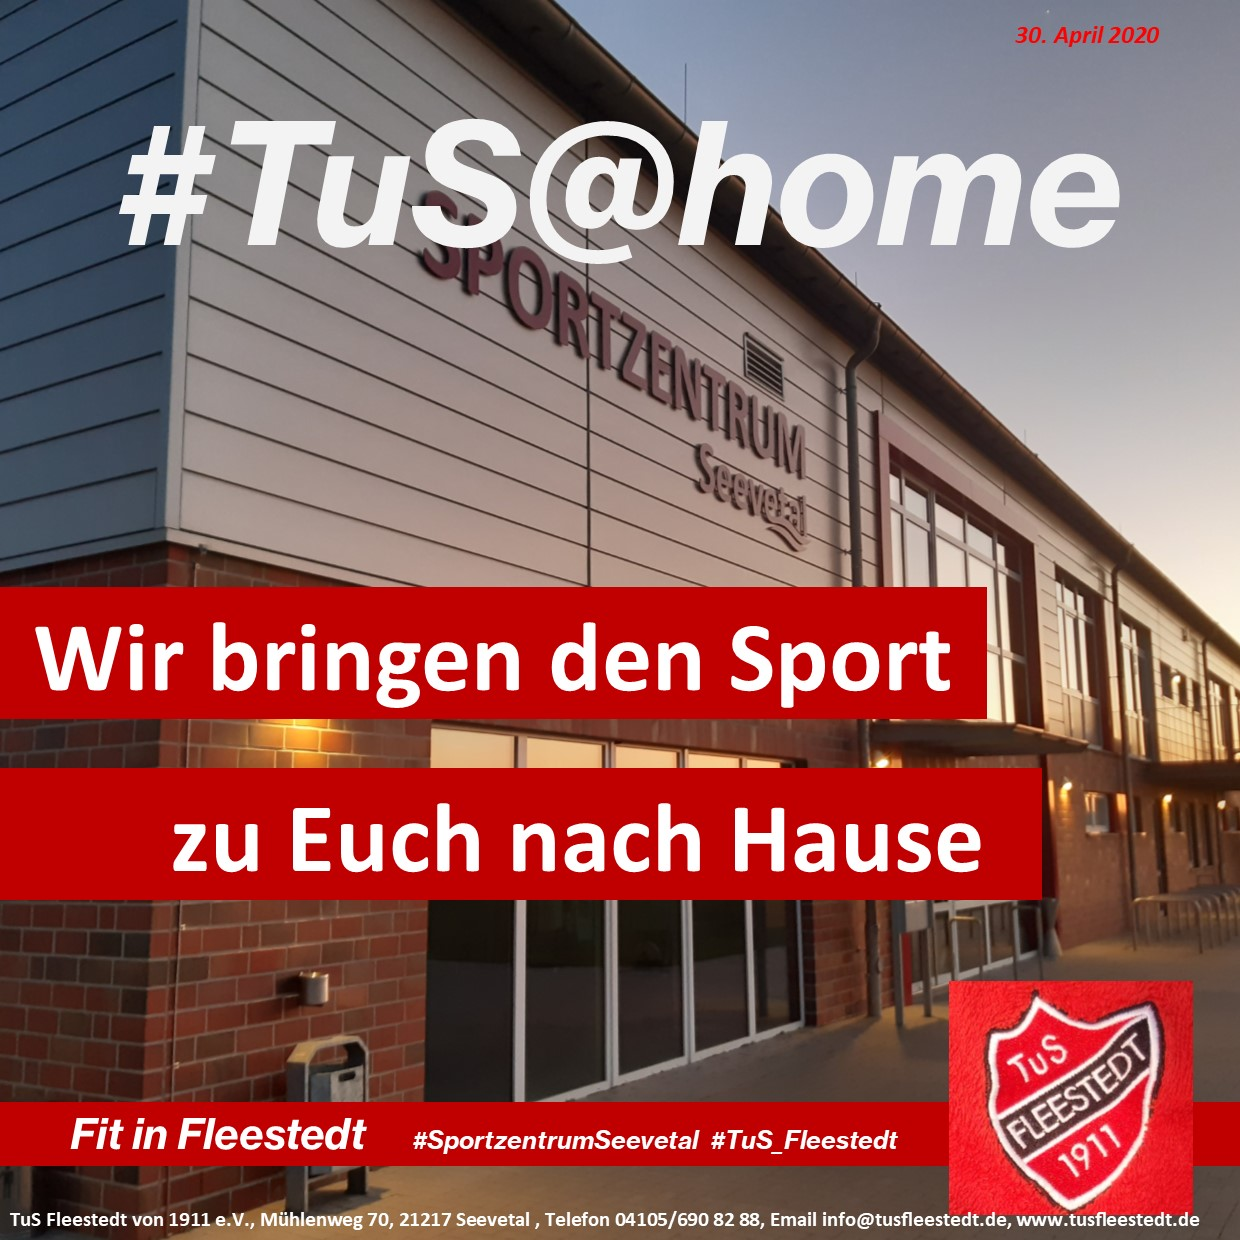 TuS at home COVER 2